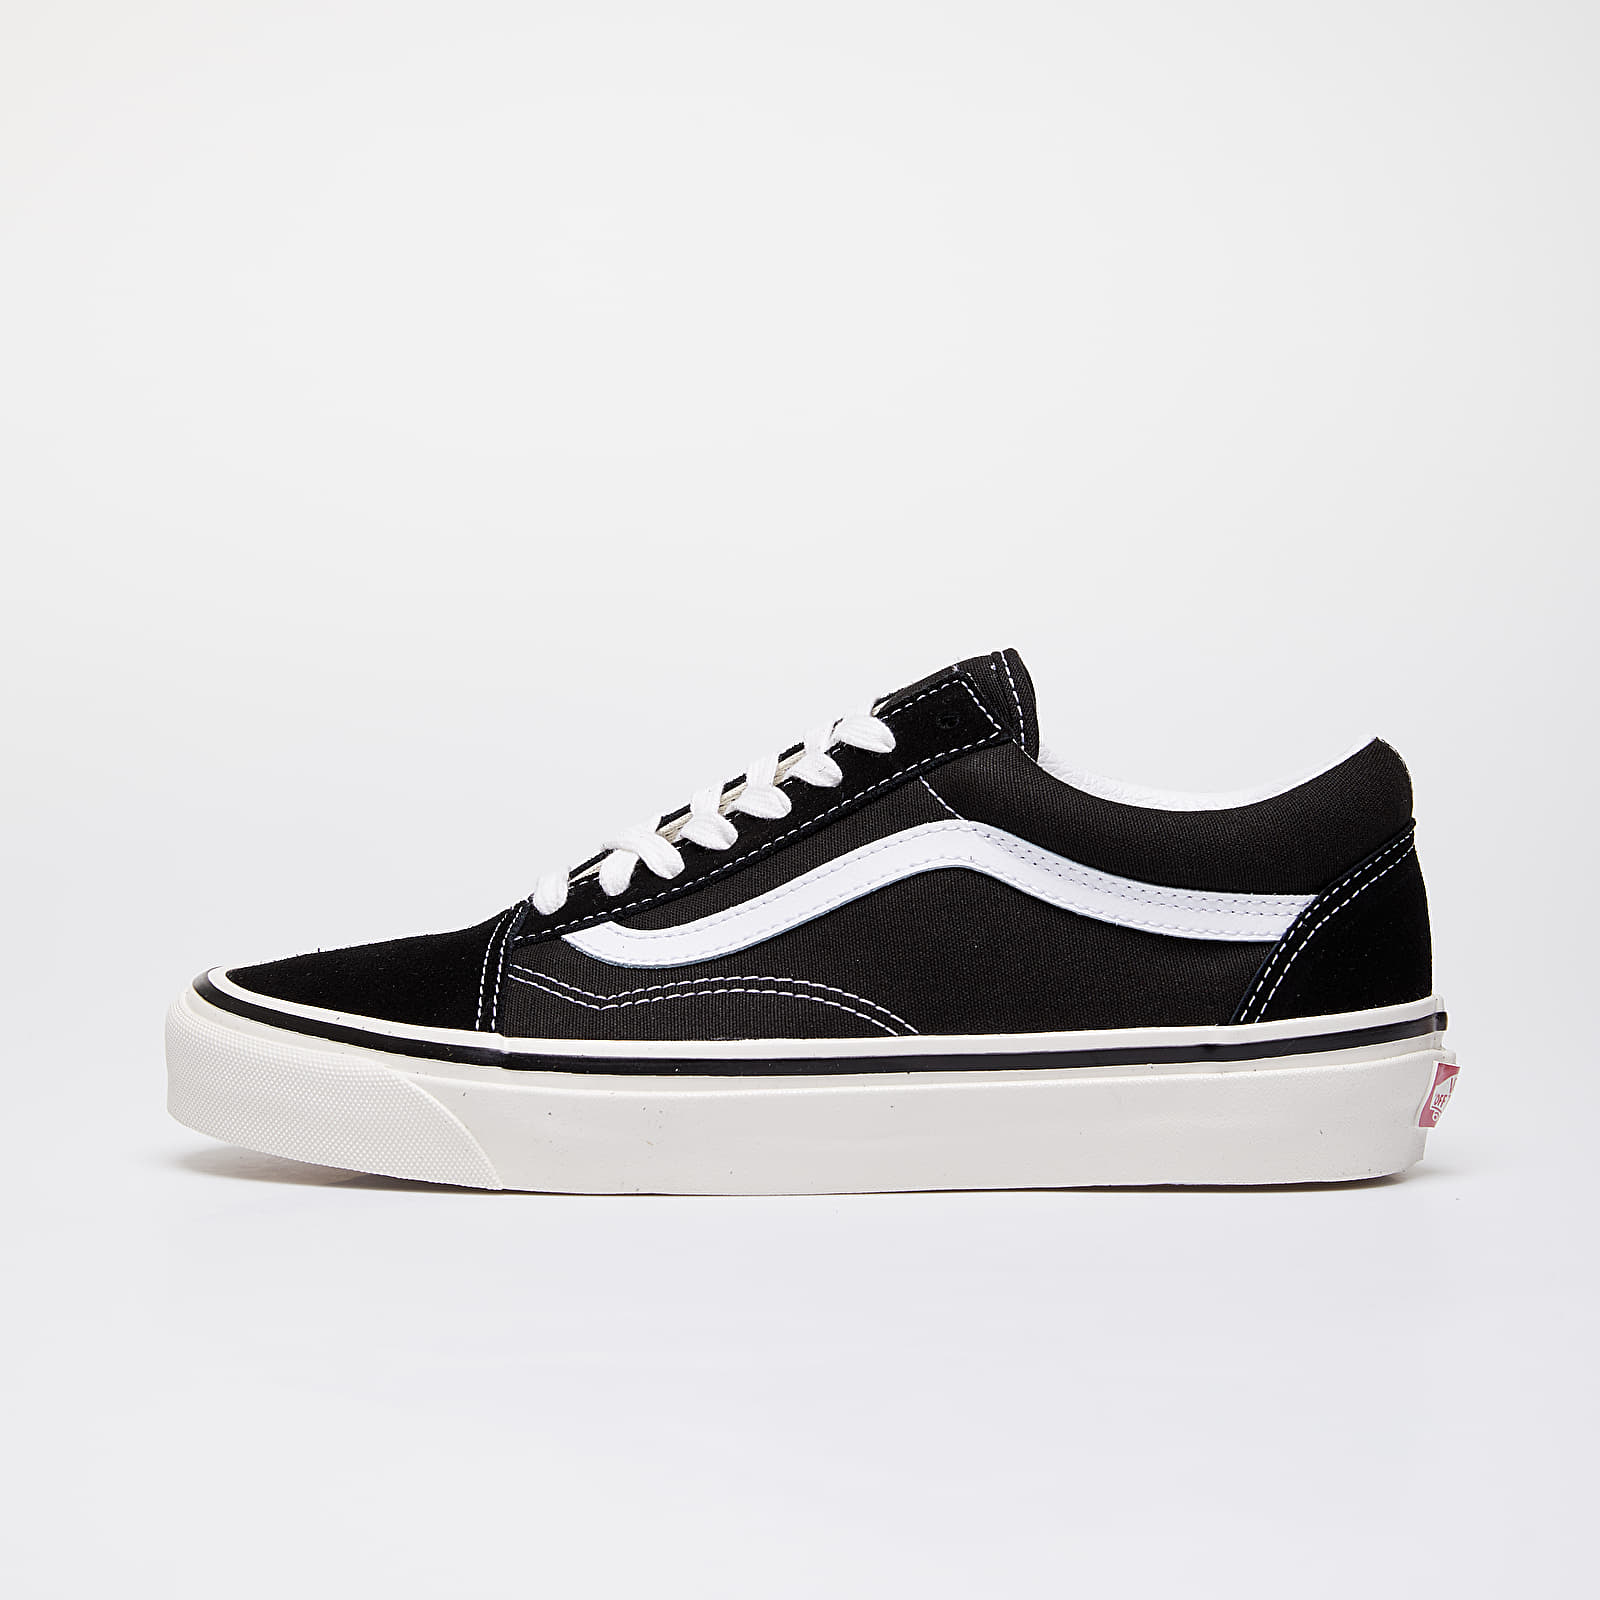 Men's shoes Vans Old Skool 36 DX Black/ True White